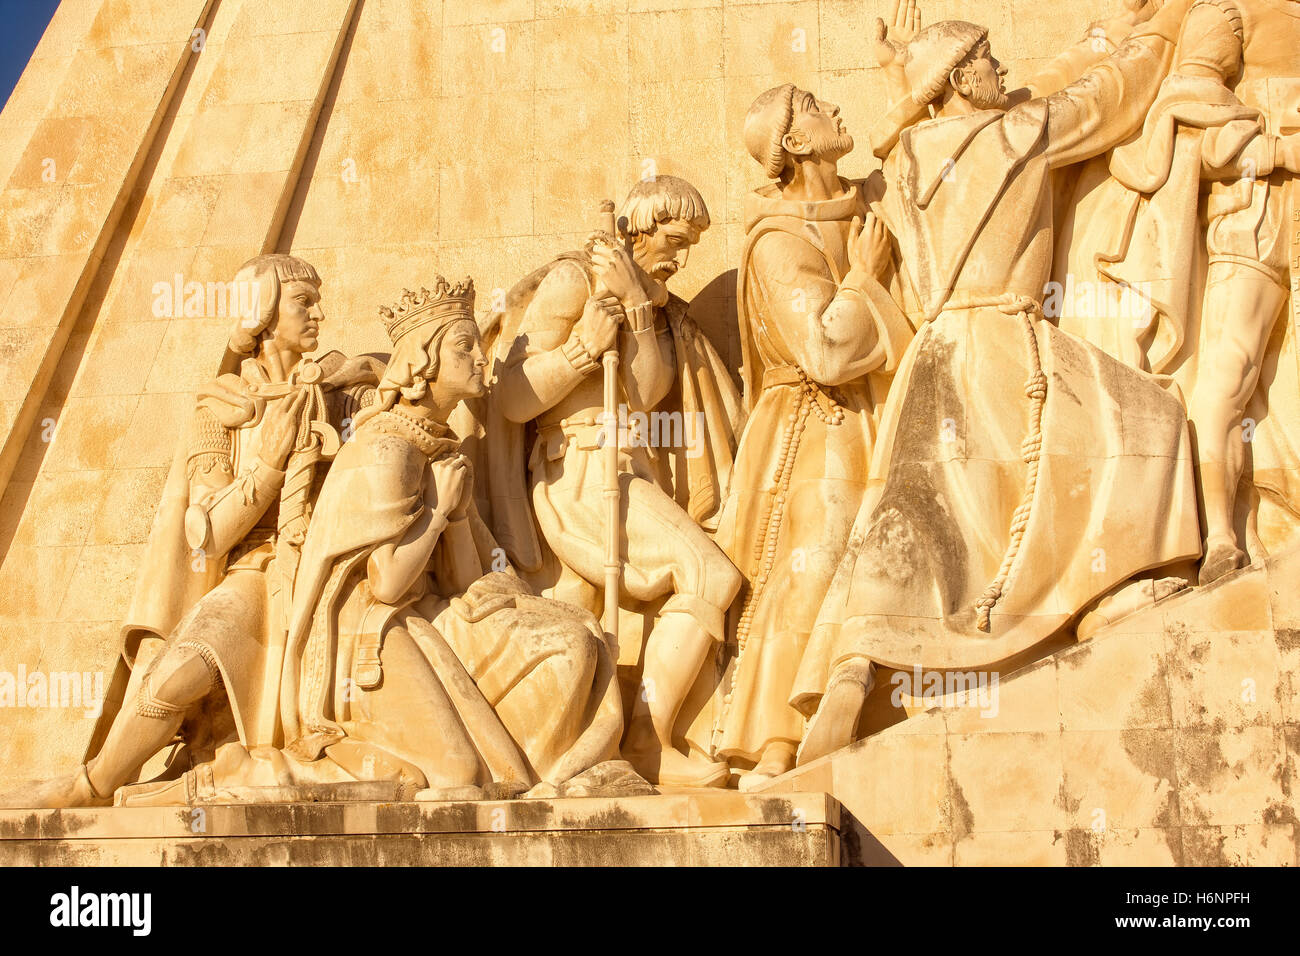 The Monument to the Discoveries in Lisbon - Stock Image